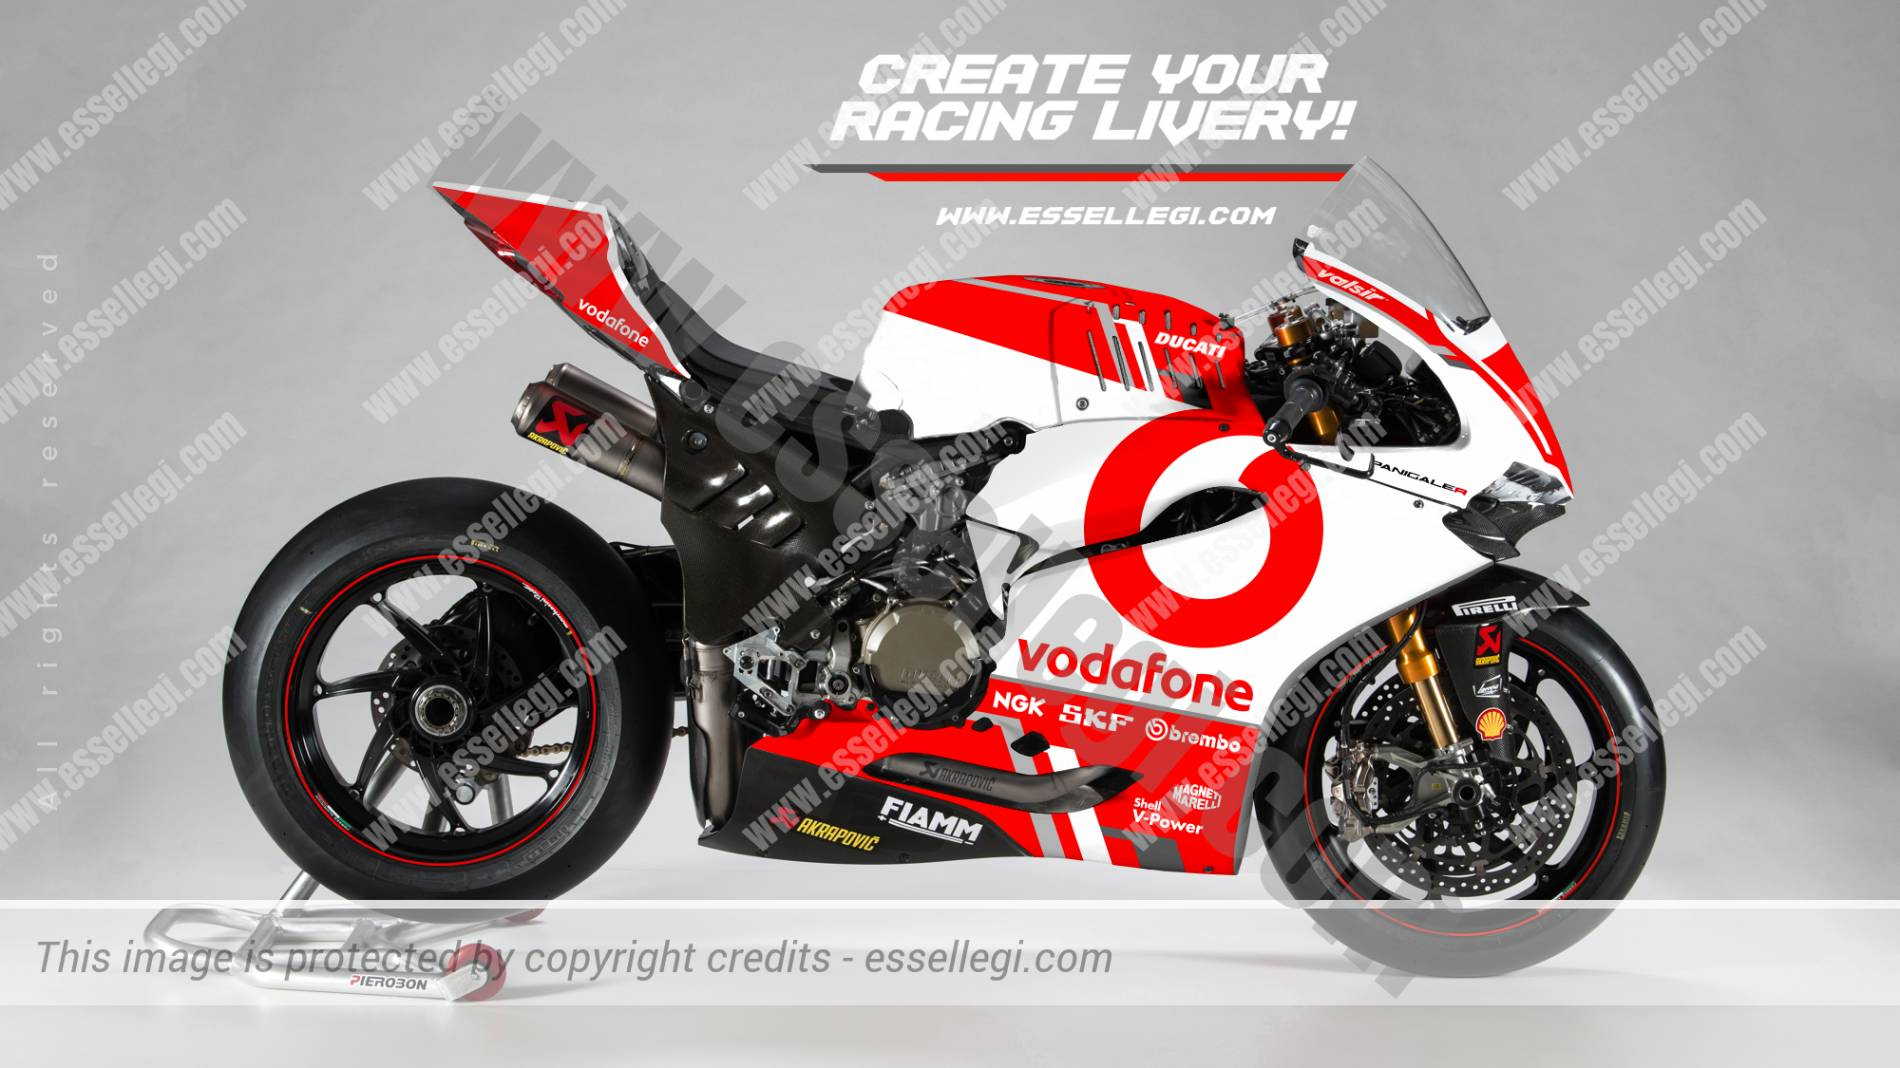 Ducati 1299 Panigale R Vodafone Tribute Racing Bike Livery